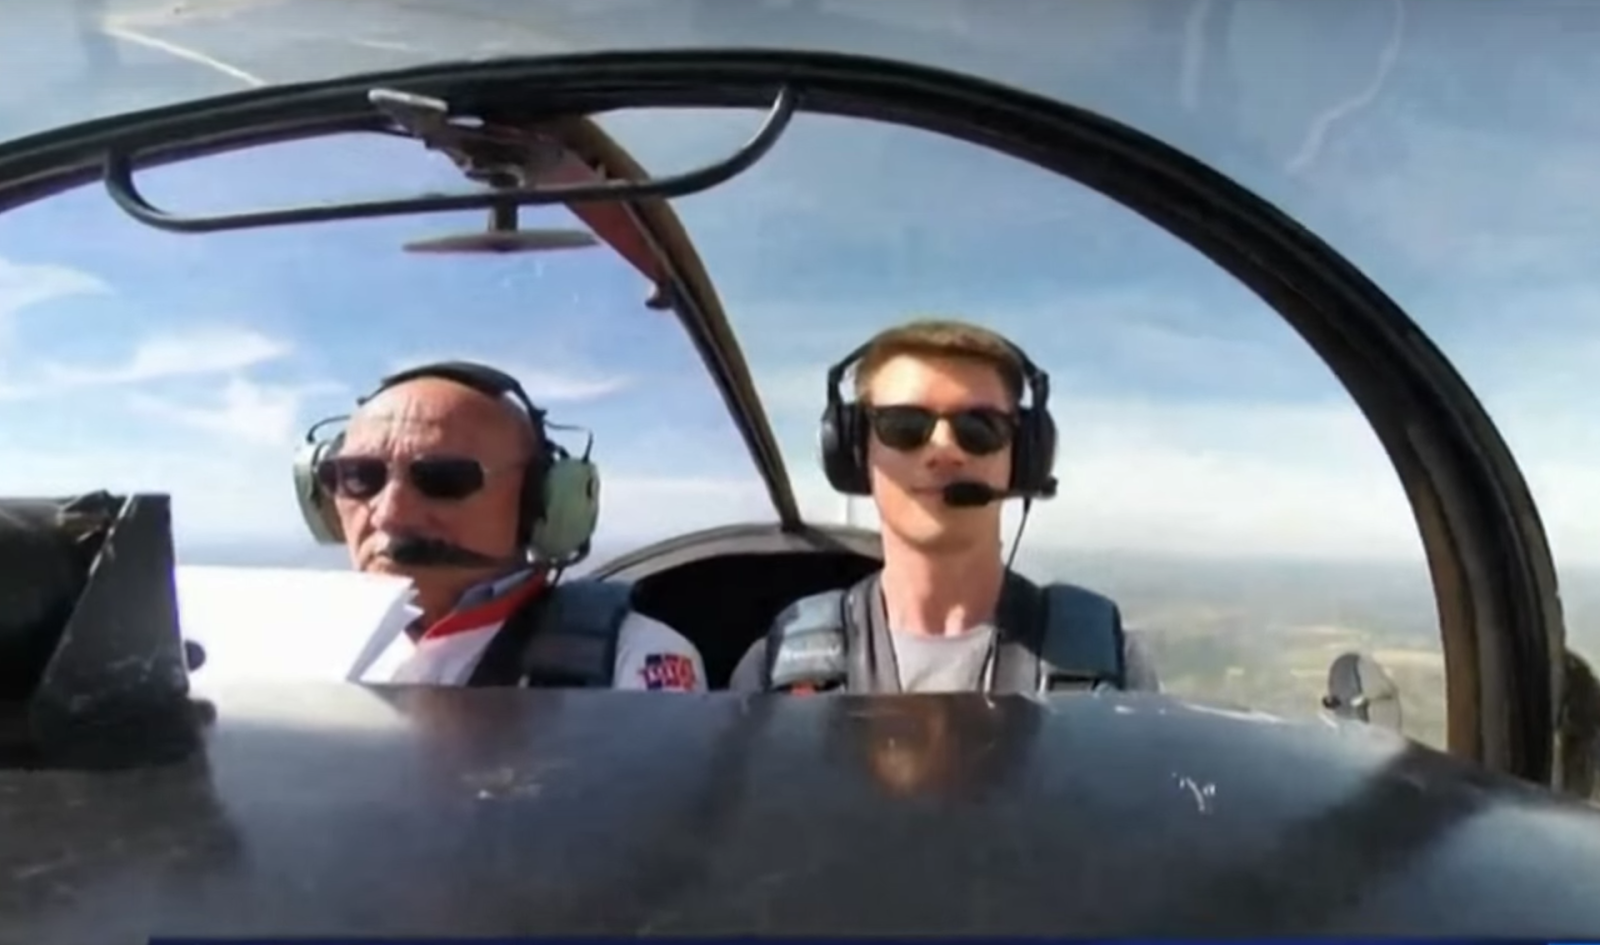 Amaury and instructor in the cockpit